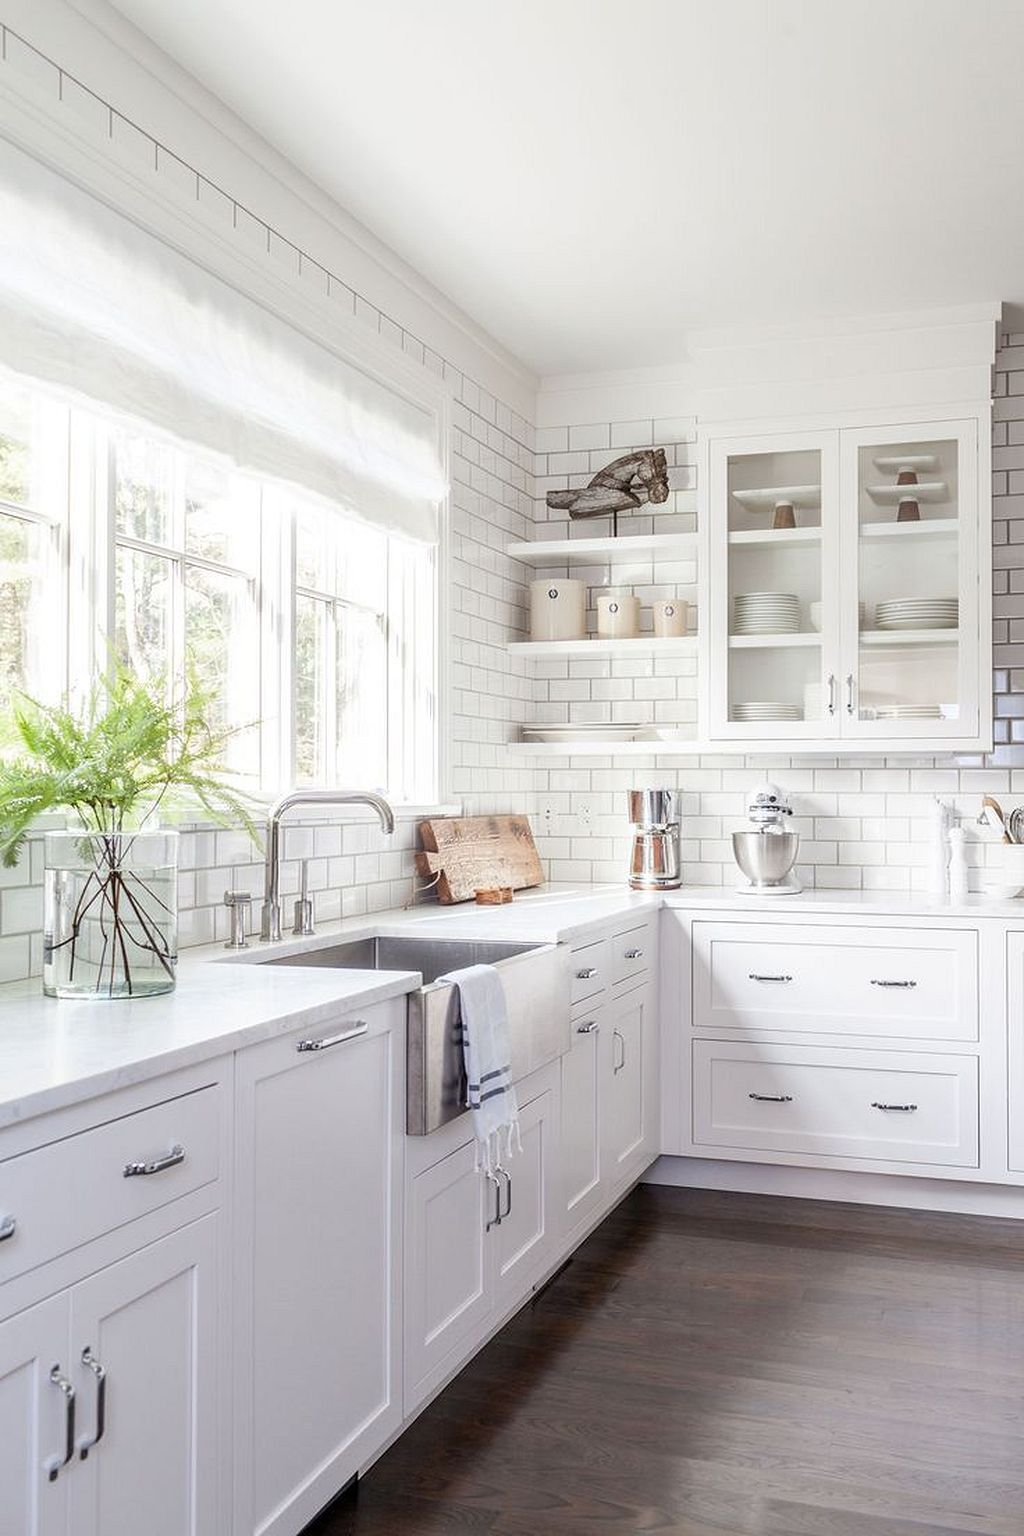 45 Incredible White Kitchen Design Ideas | Cocinas blancas, Cocinas ...